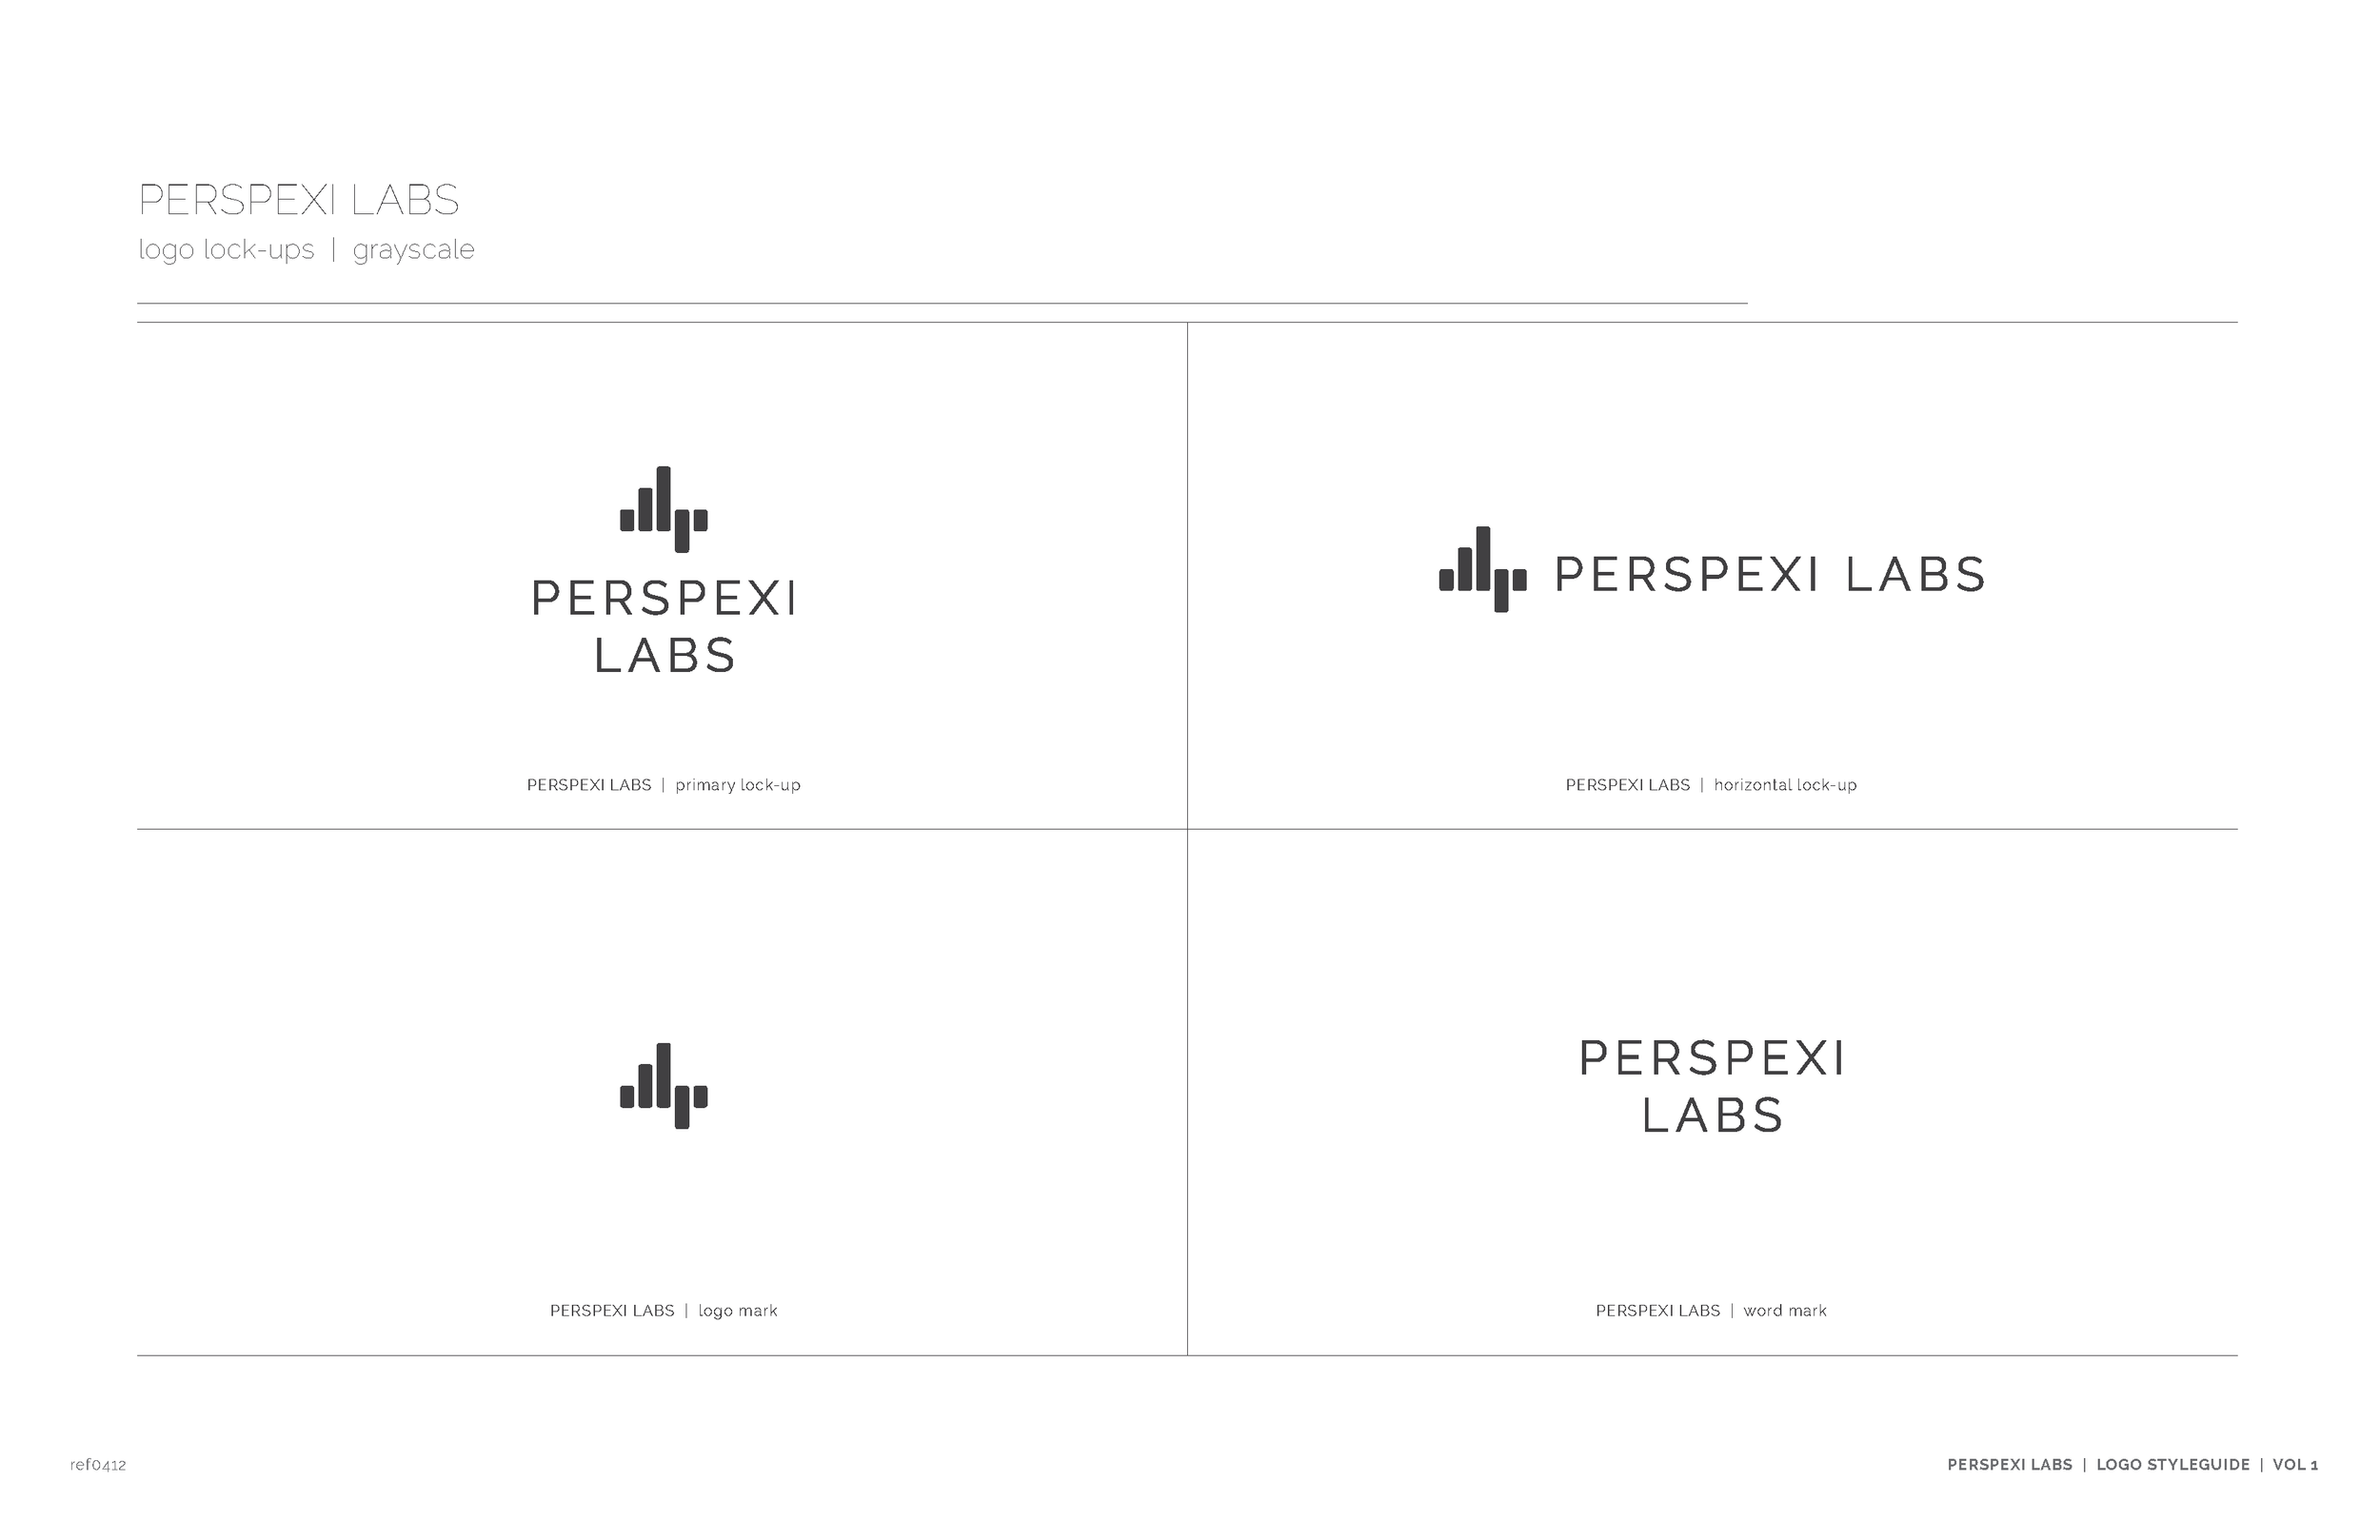 0412_StyleGuide_PerspexiLabs_Page_05.png